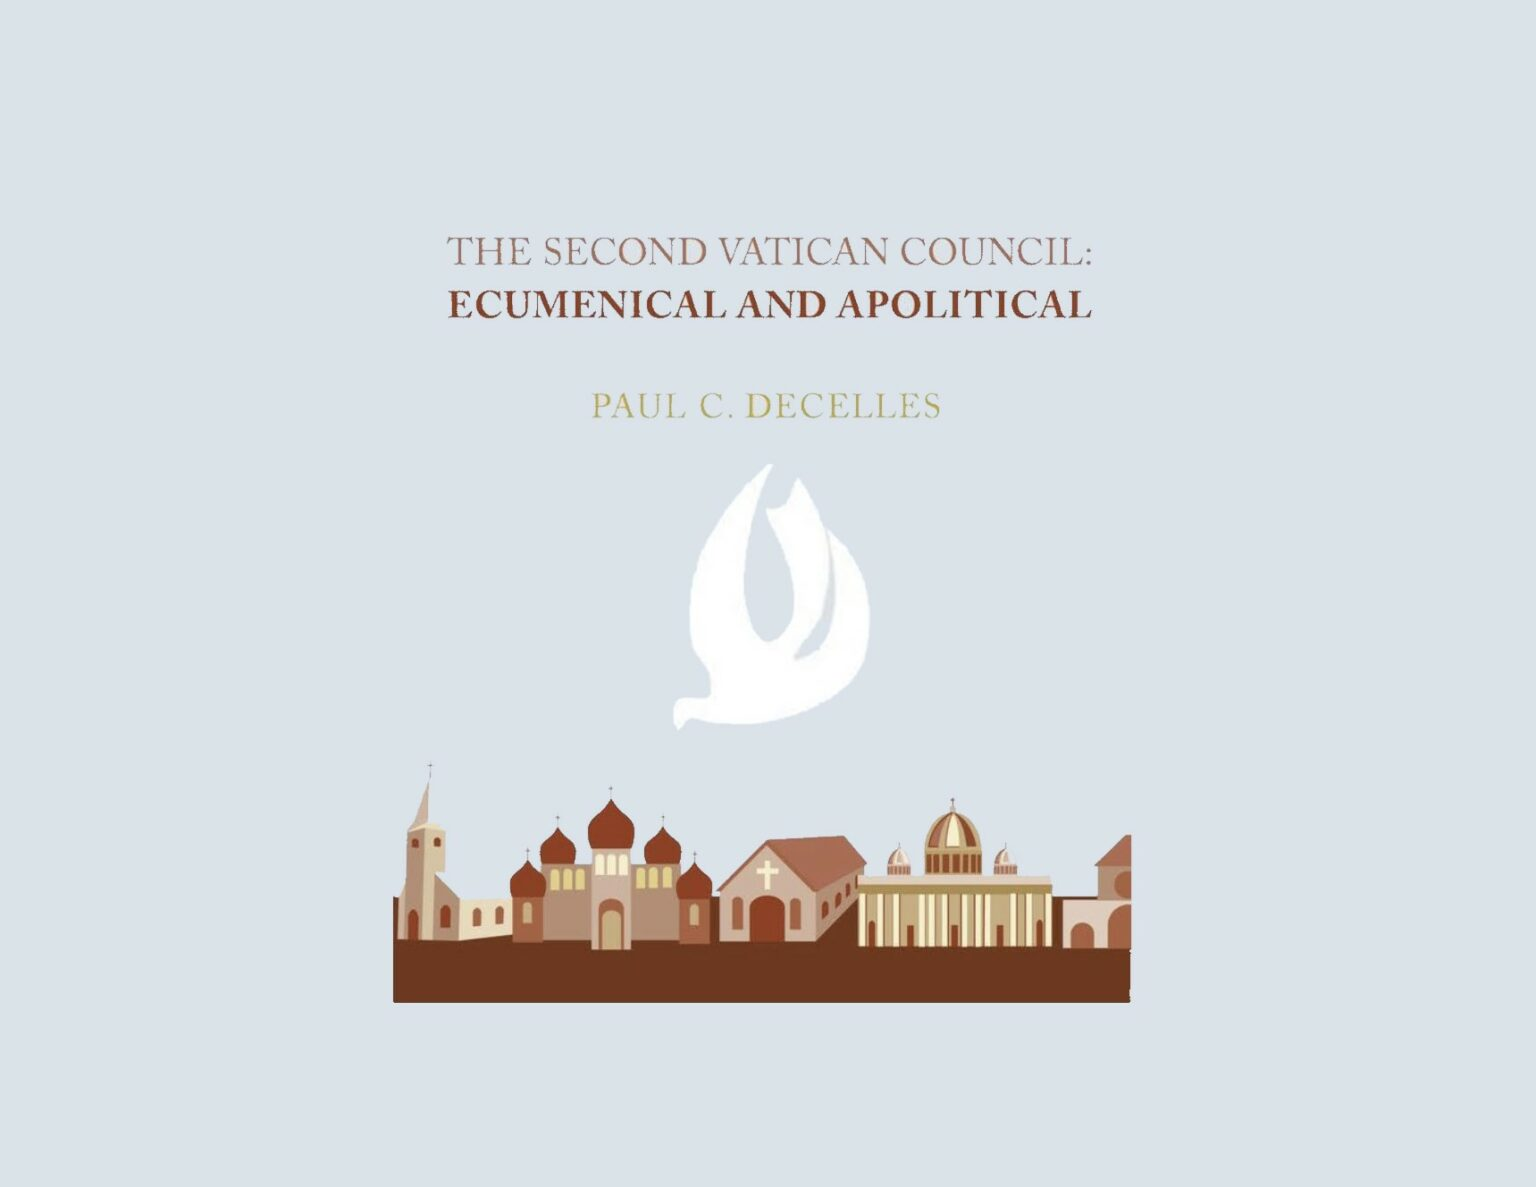 Vatican II Ebook Highlights Unity